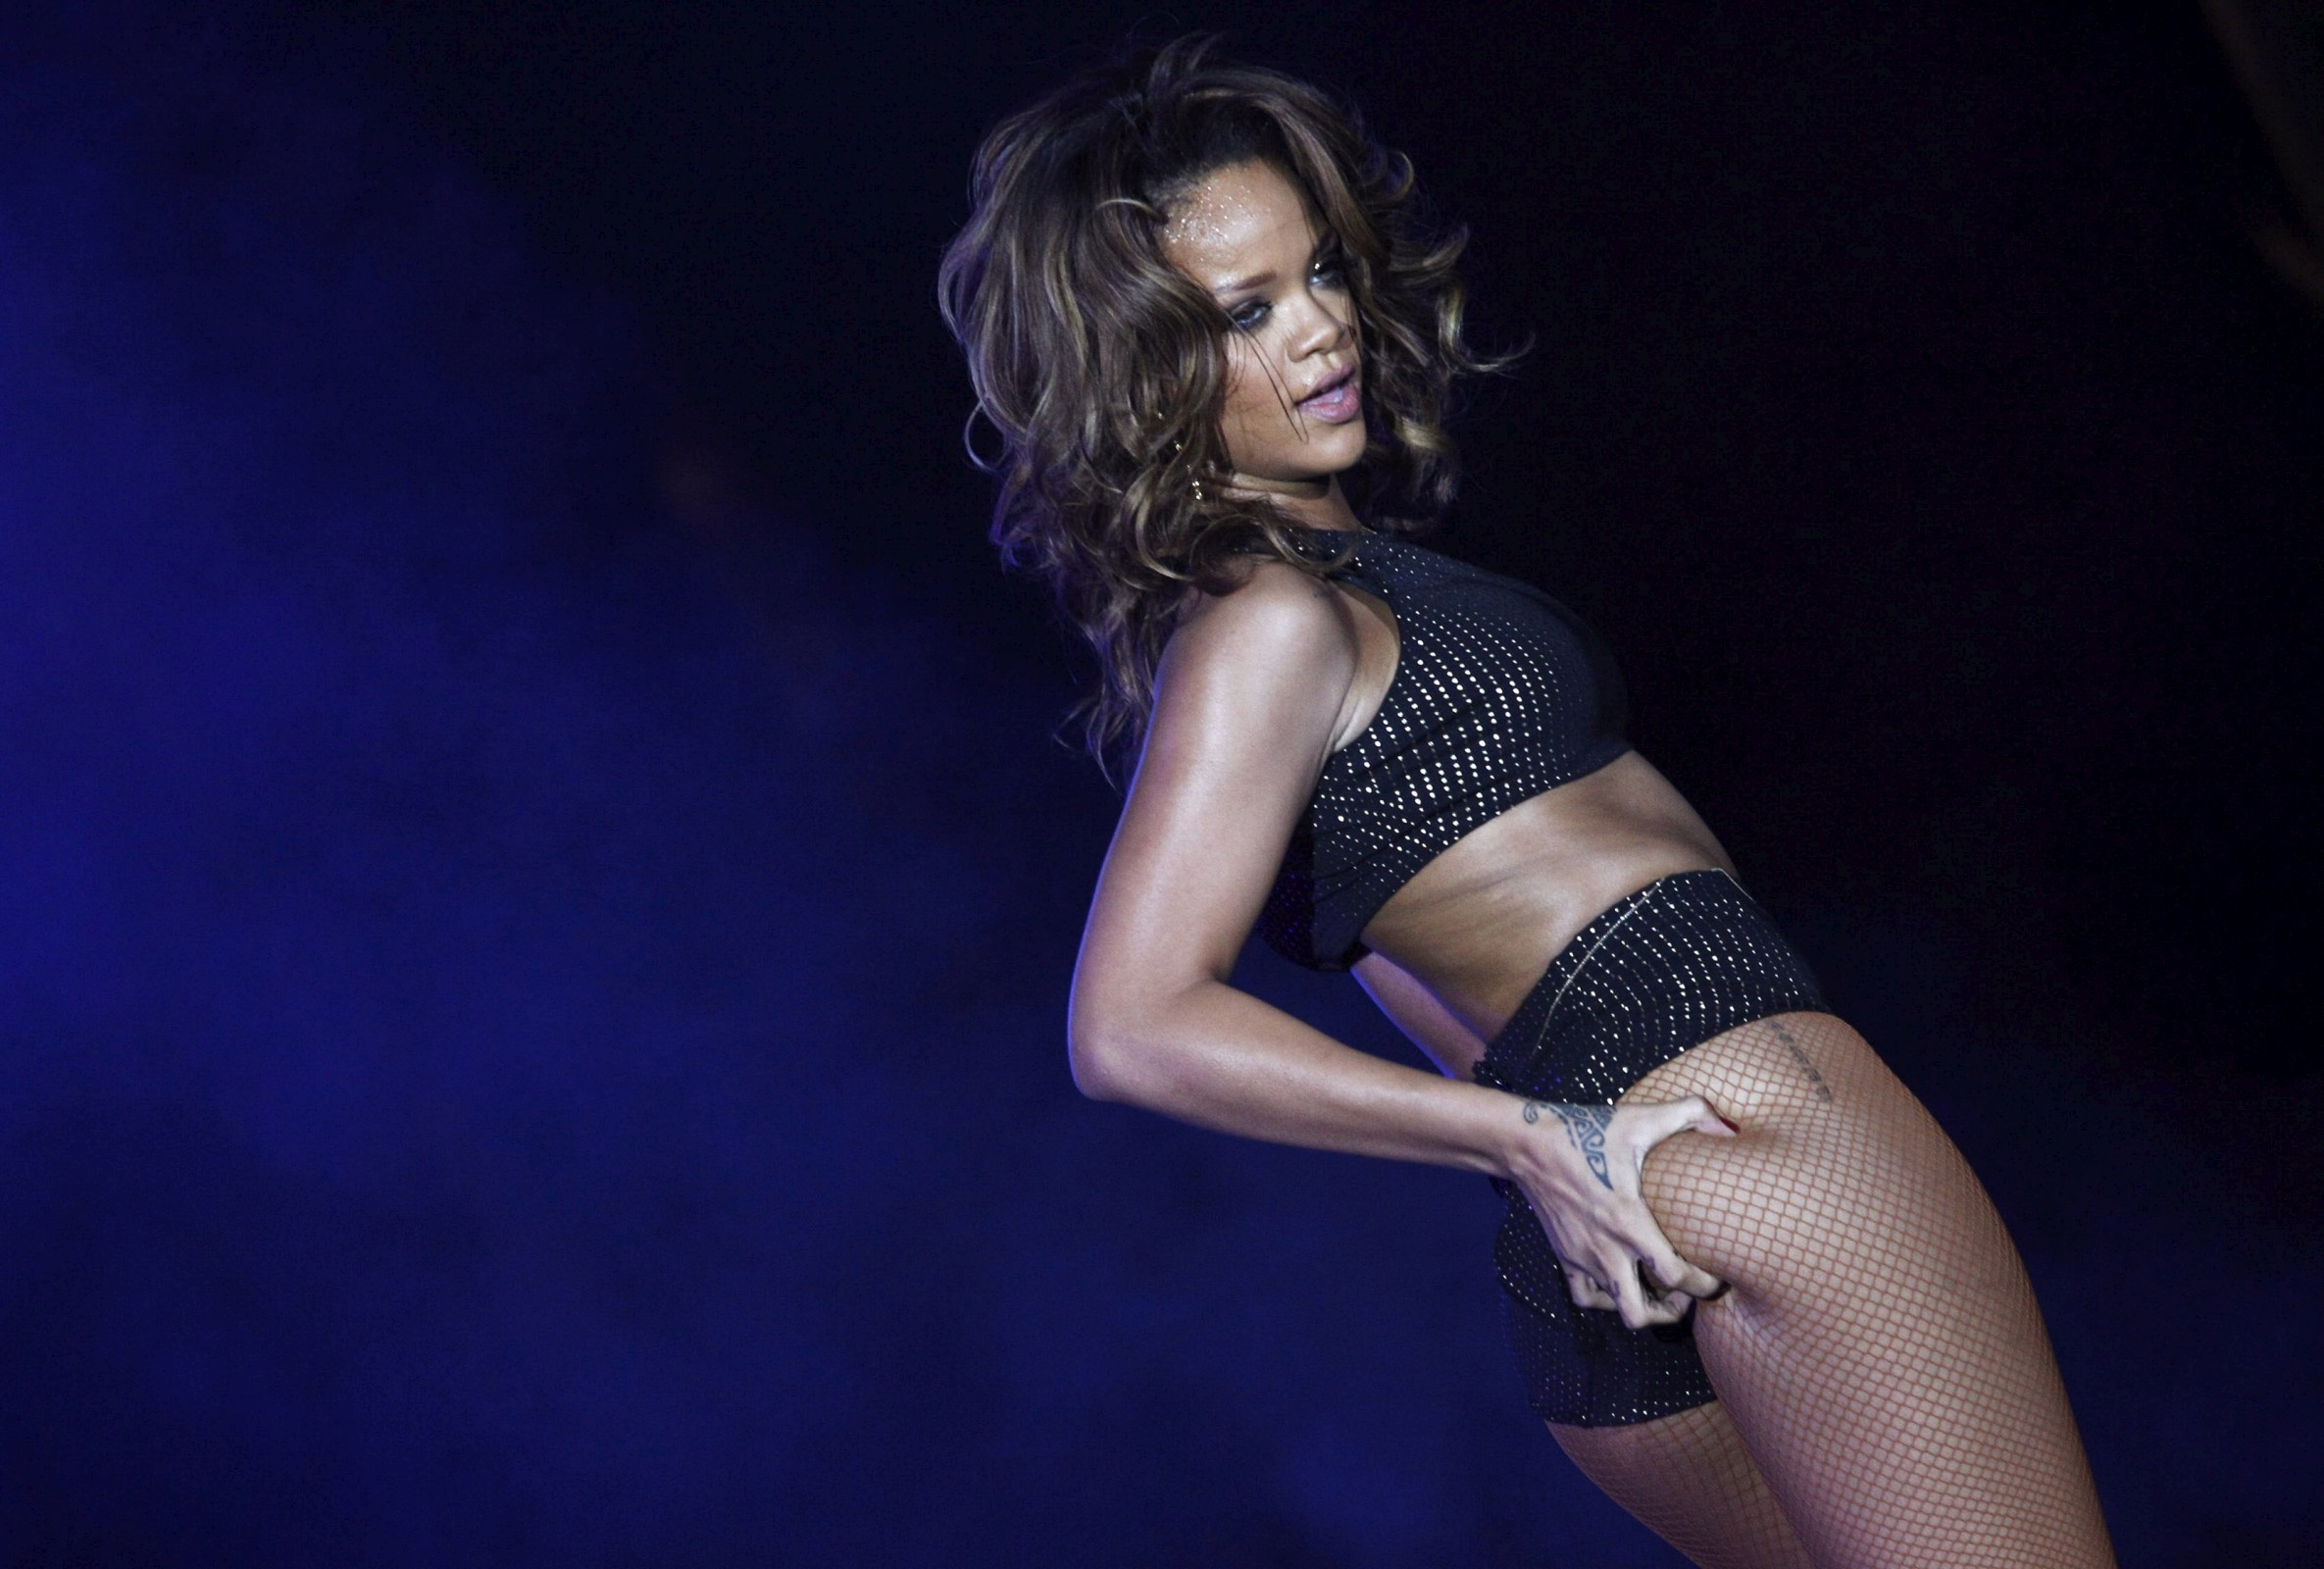 black people rihanna Celebrity HD Wallpaper